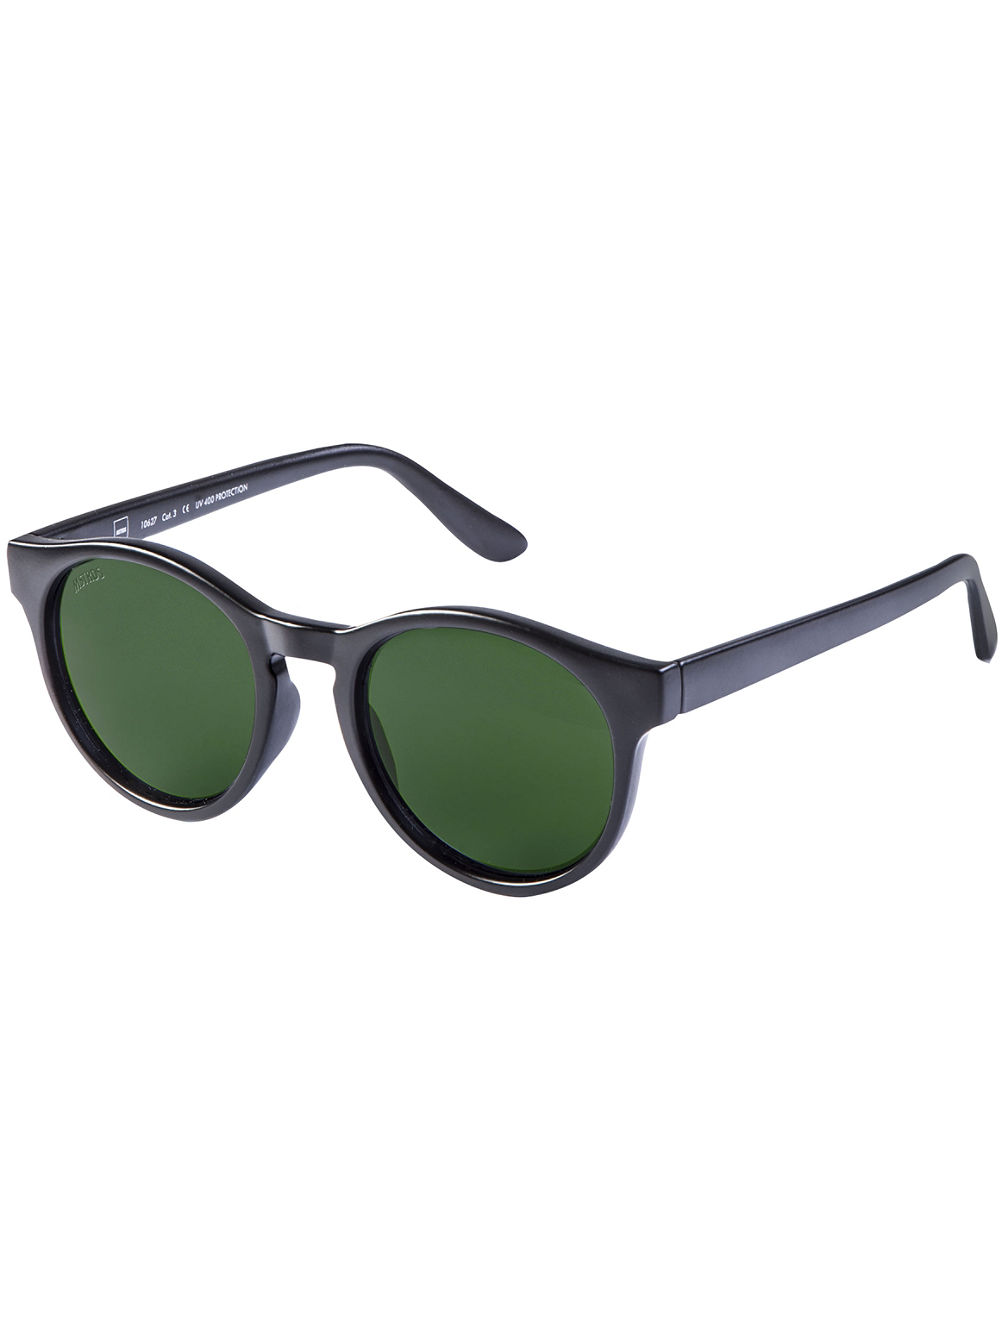 Sunrise Black Sonnenbrille